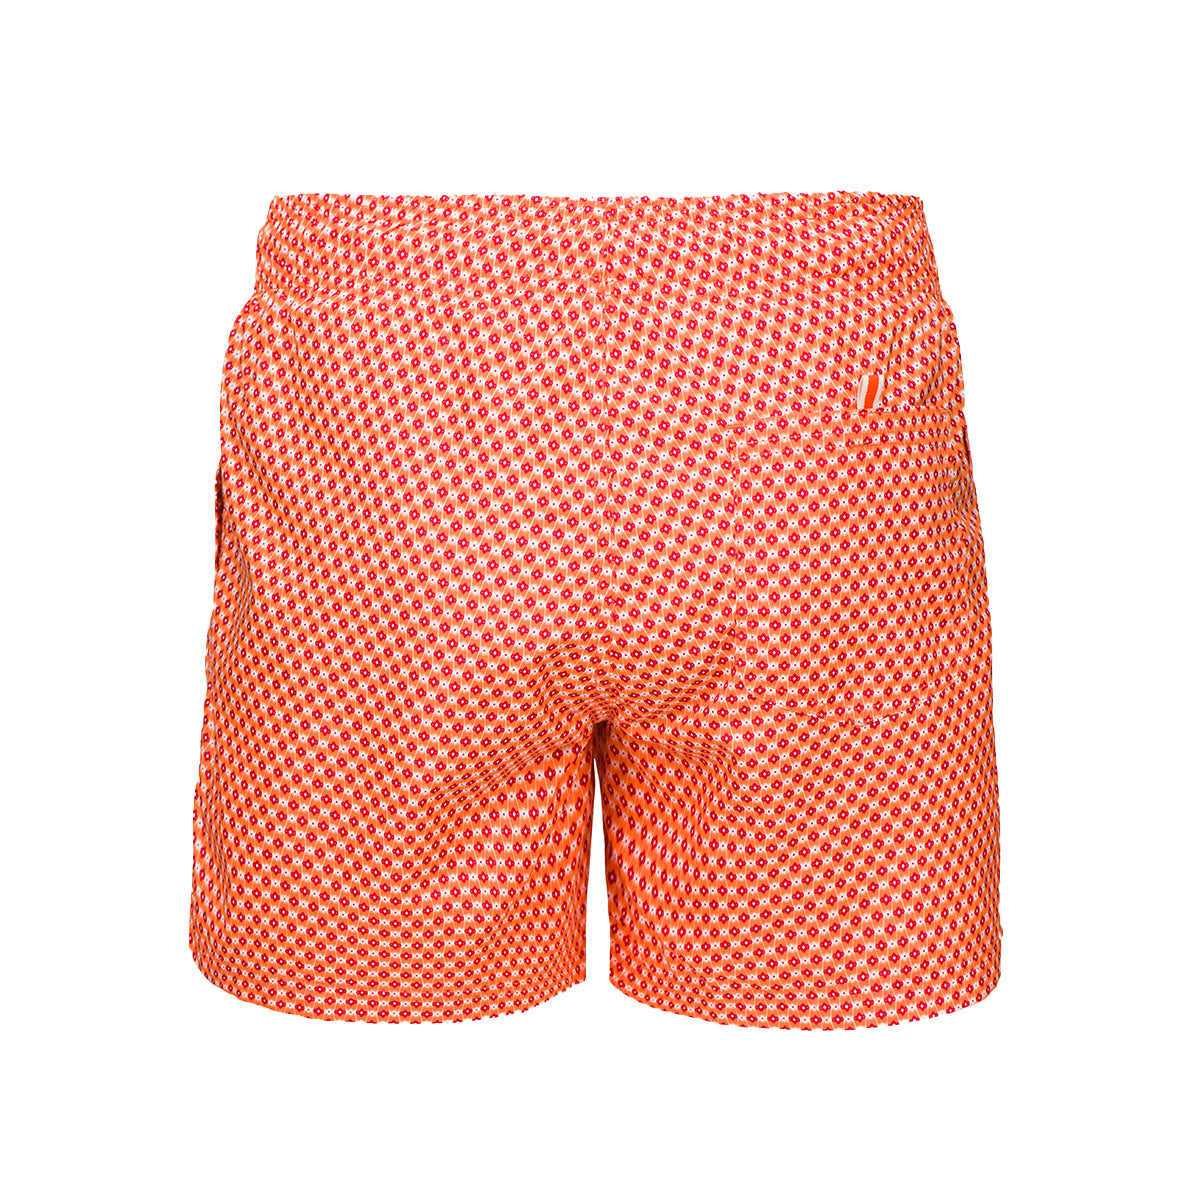 Montego Printed Bathing Shorts - background::white,variant::orange